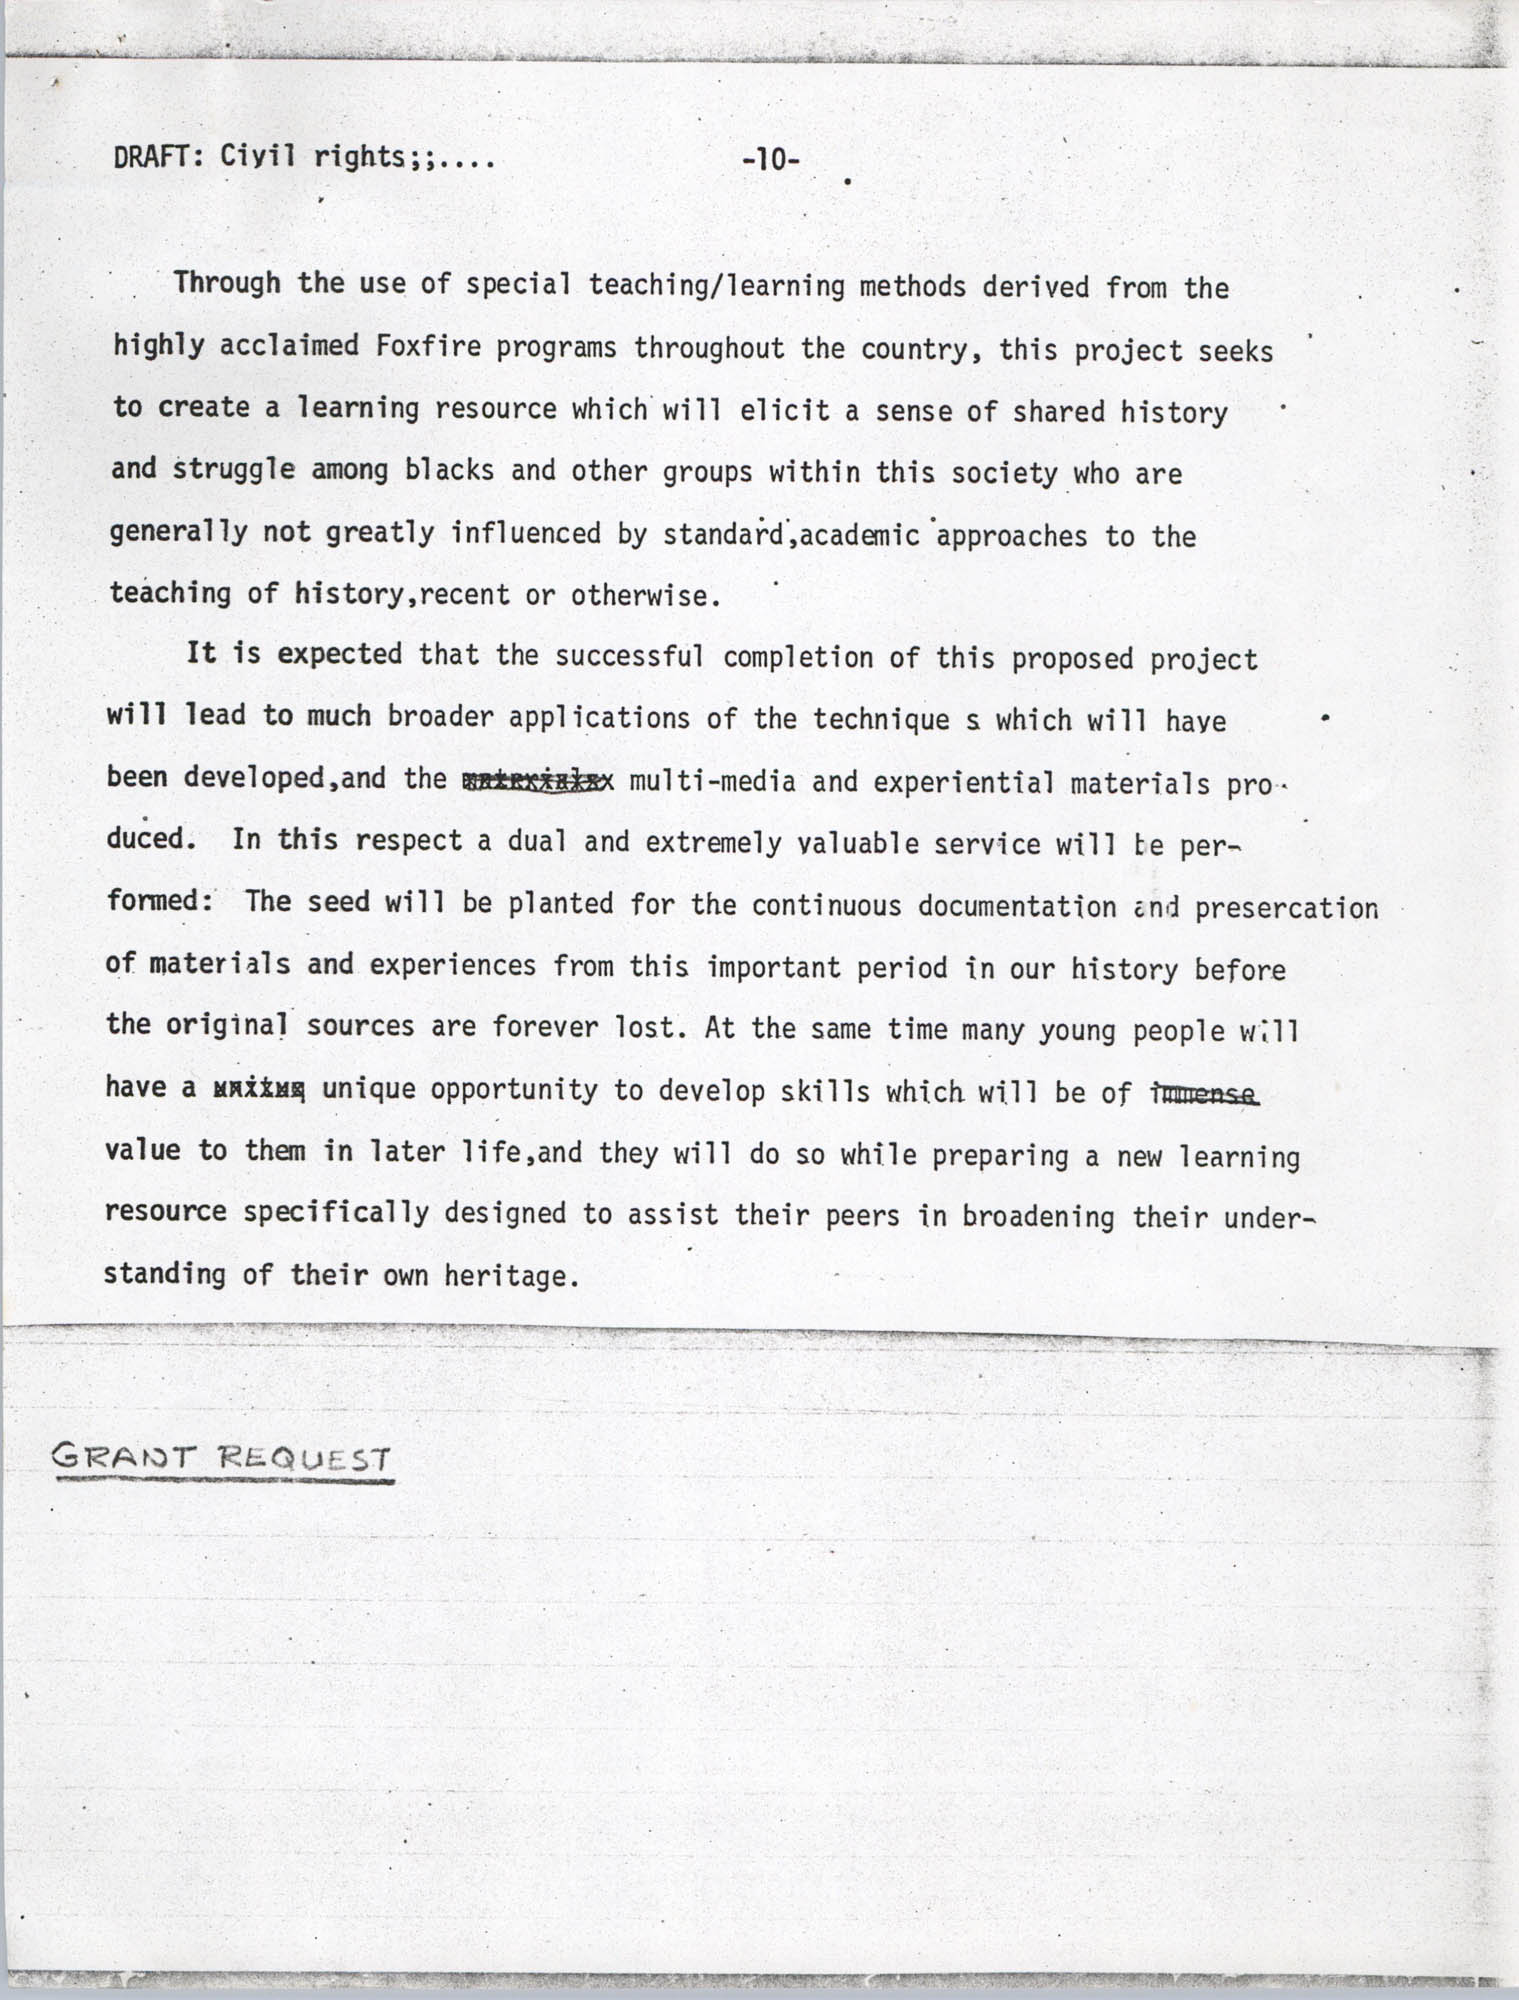 Civil Rights Learning Resource Development Project, Draft, Page 10